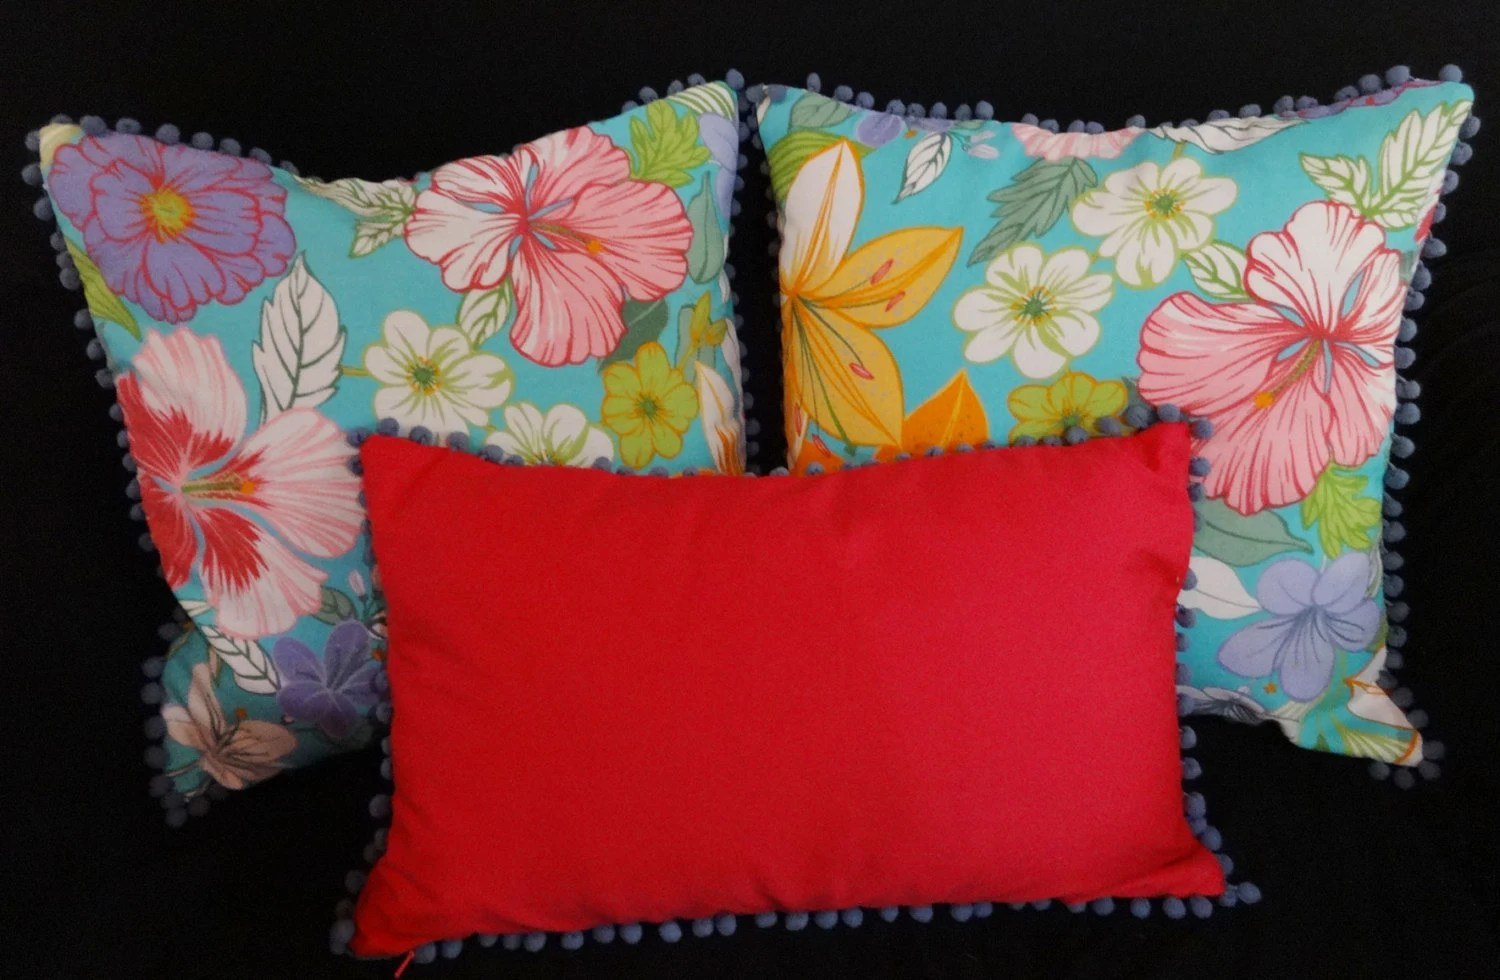 how to decorate oblong living room desighn hot pink pillow. pom border pillow cover. fun